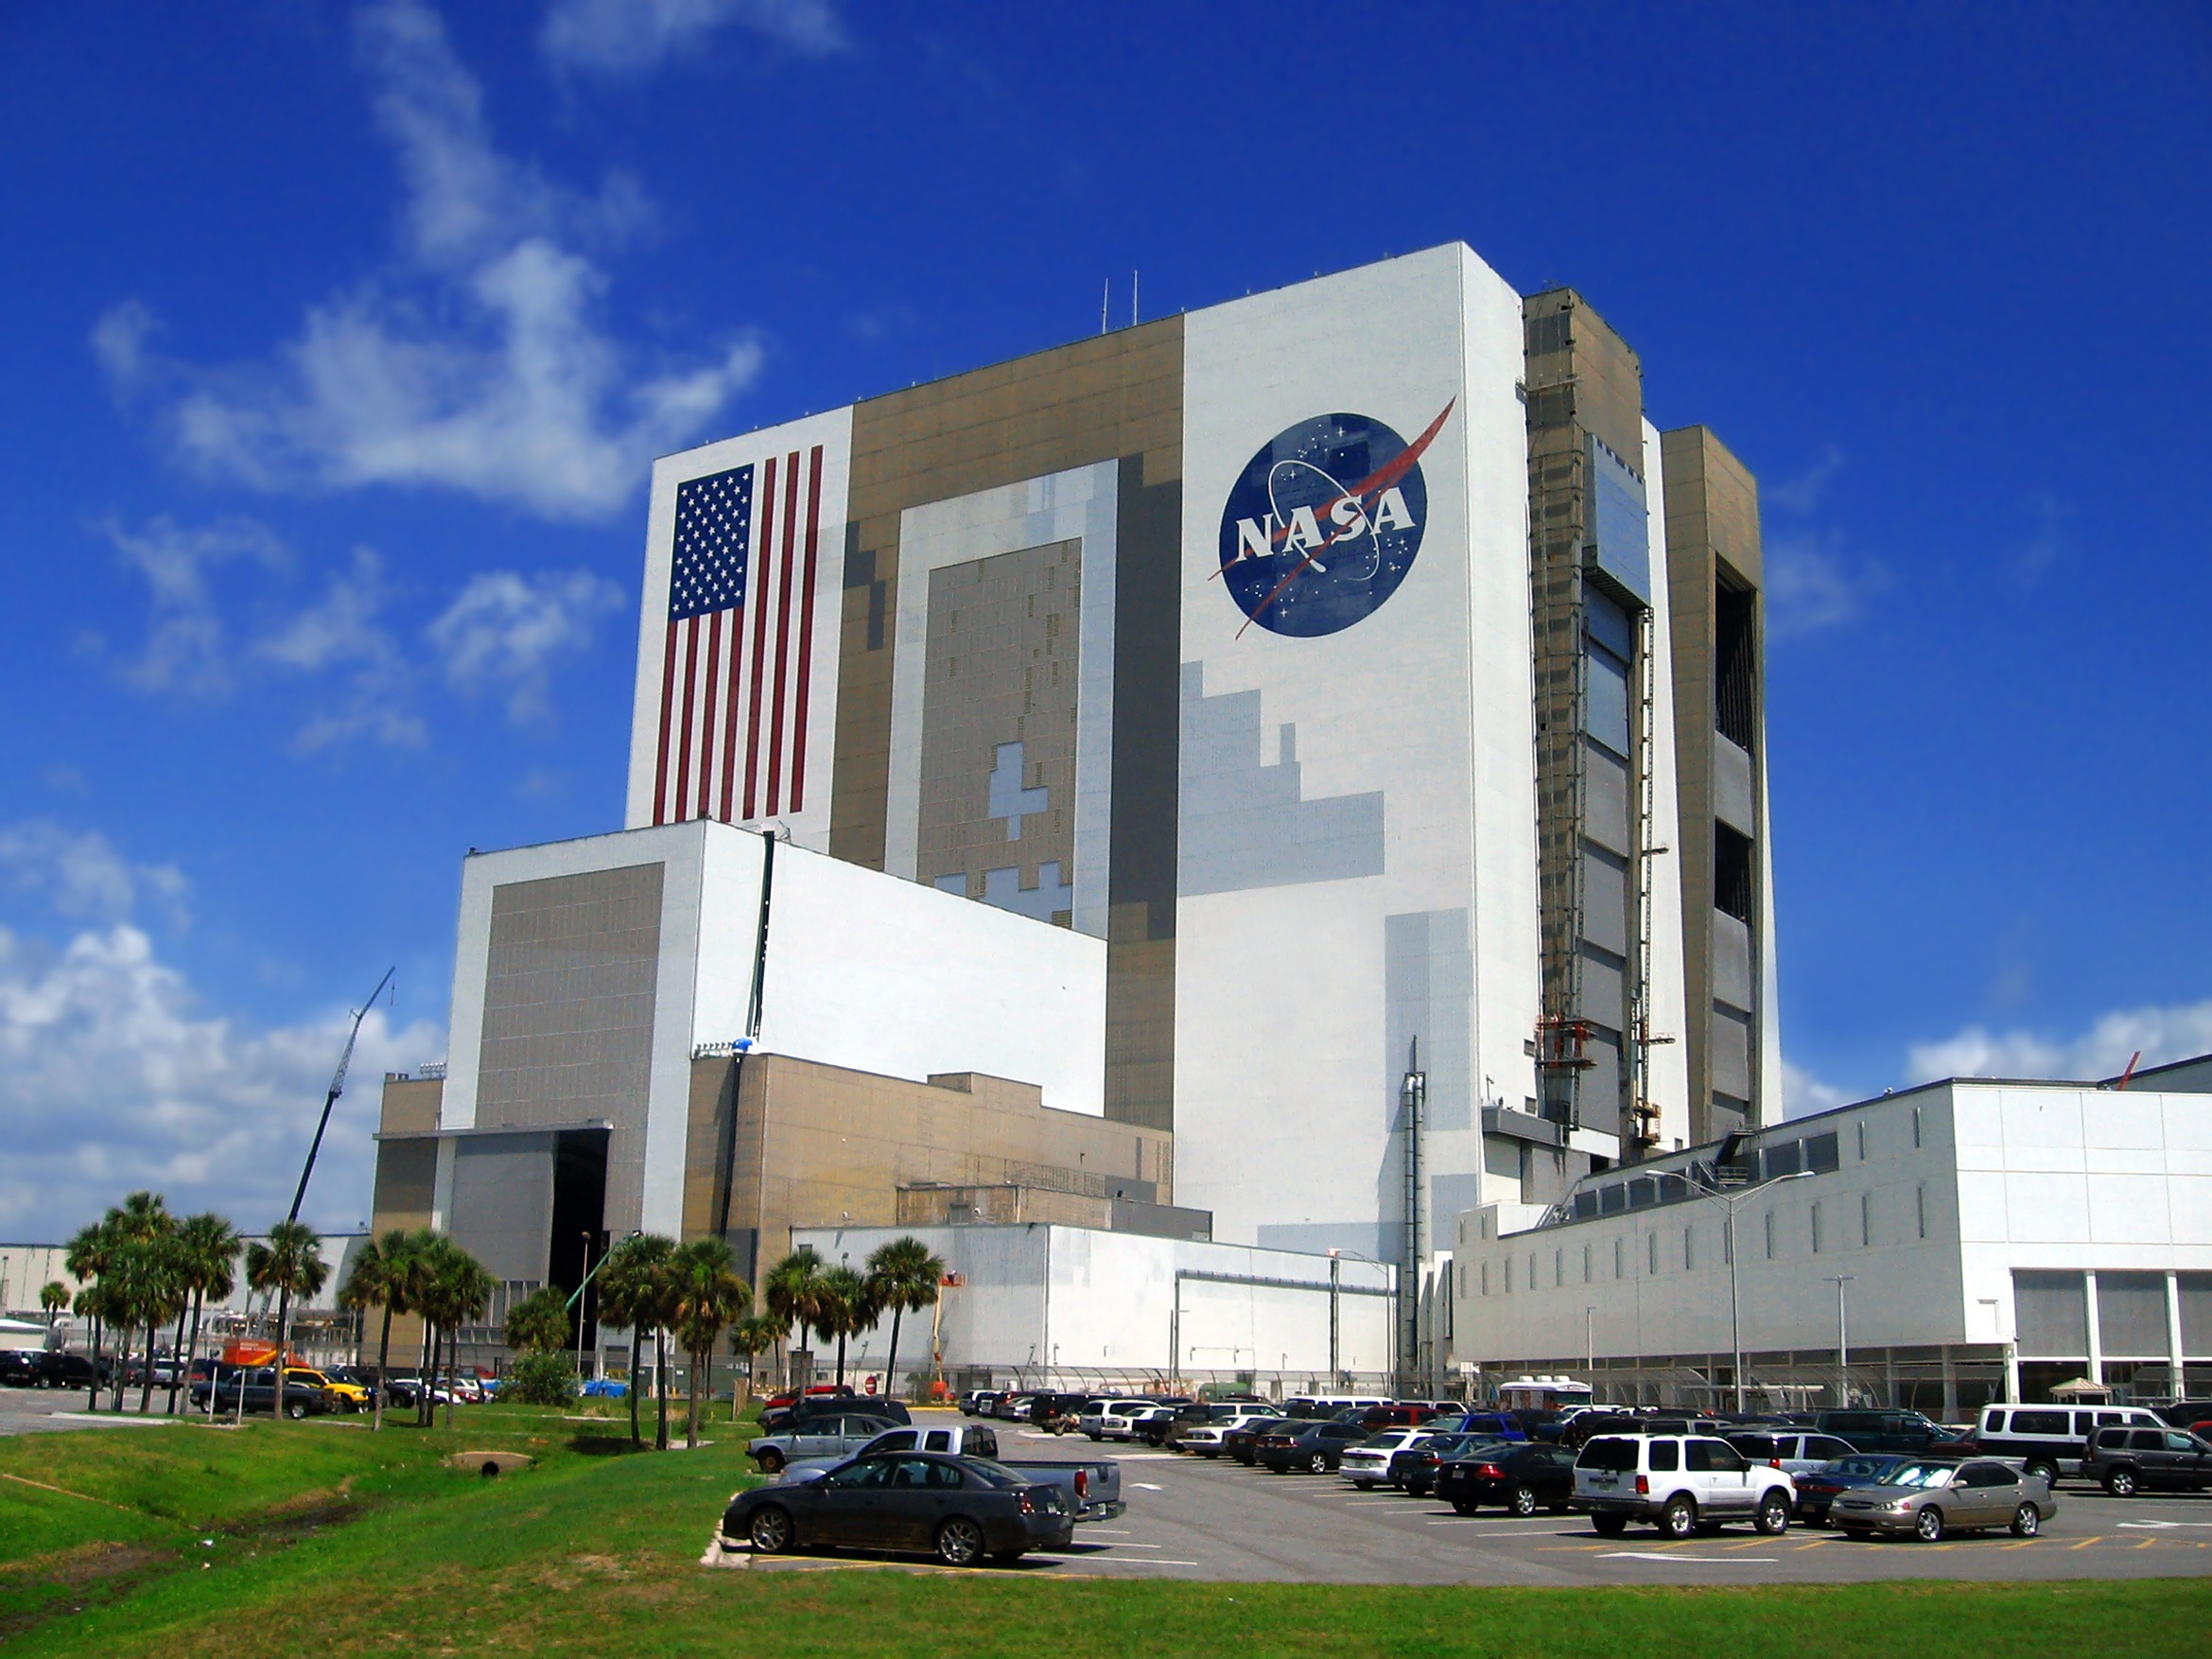 Budynek NASA, Kennedy space centre, Florida, USA, licencja: shutterstock/By Samot